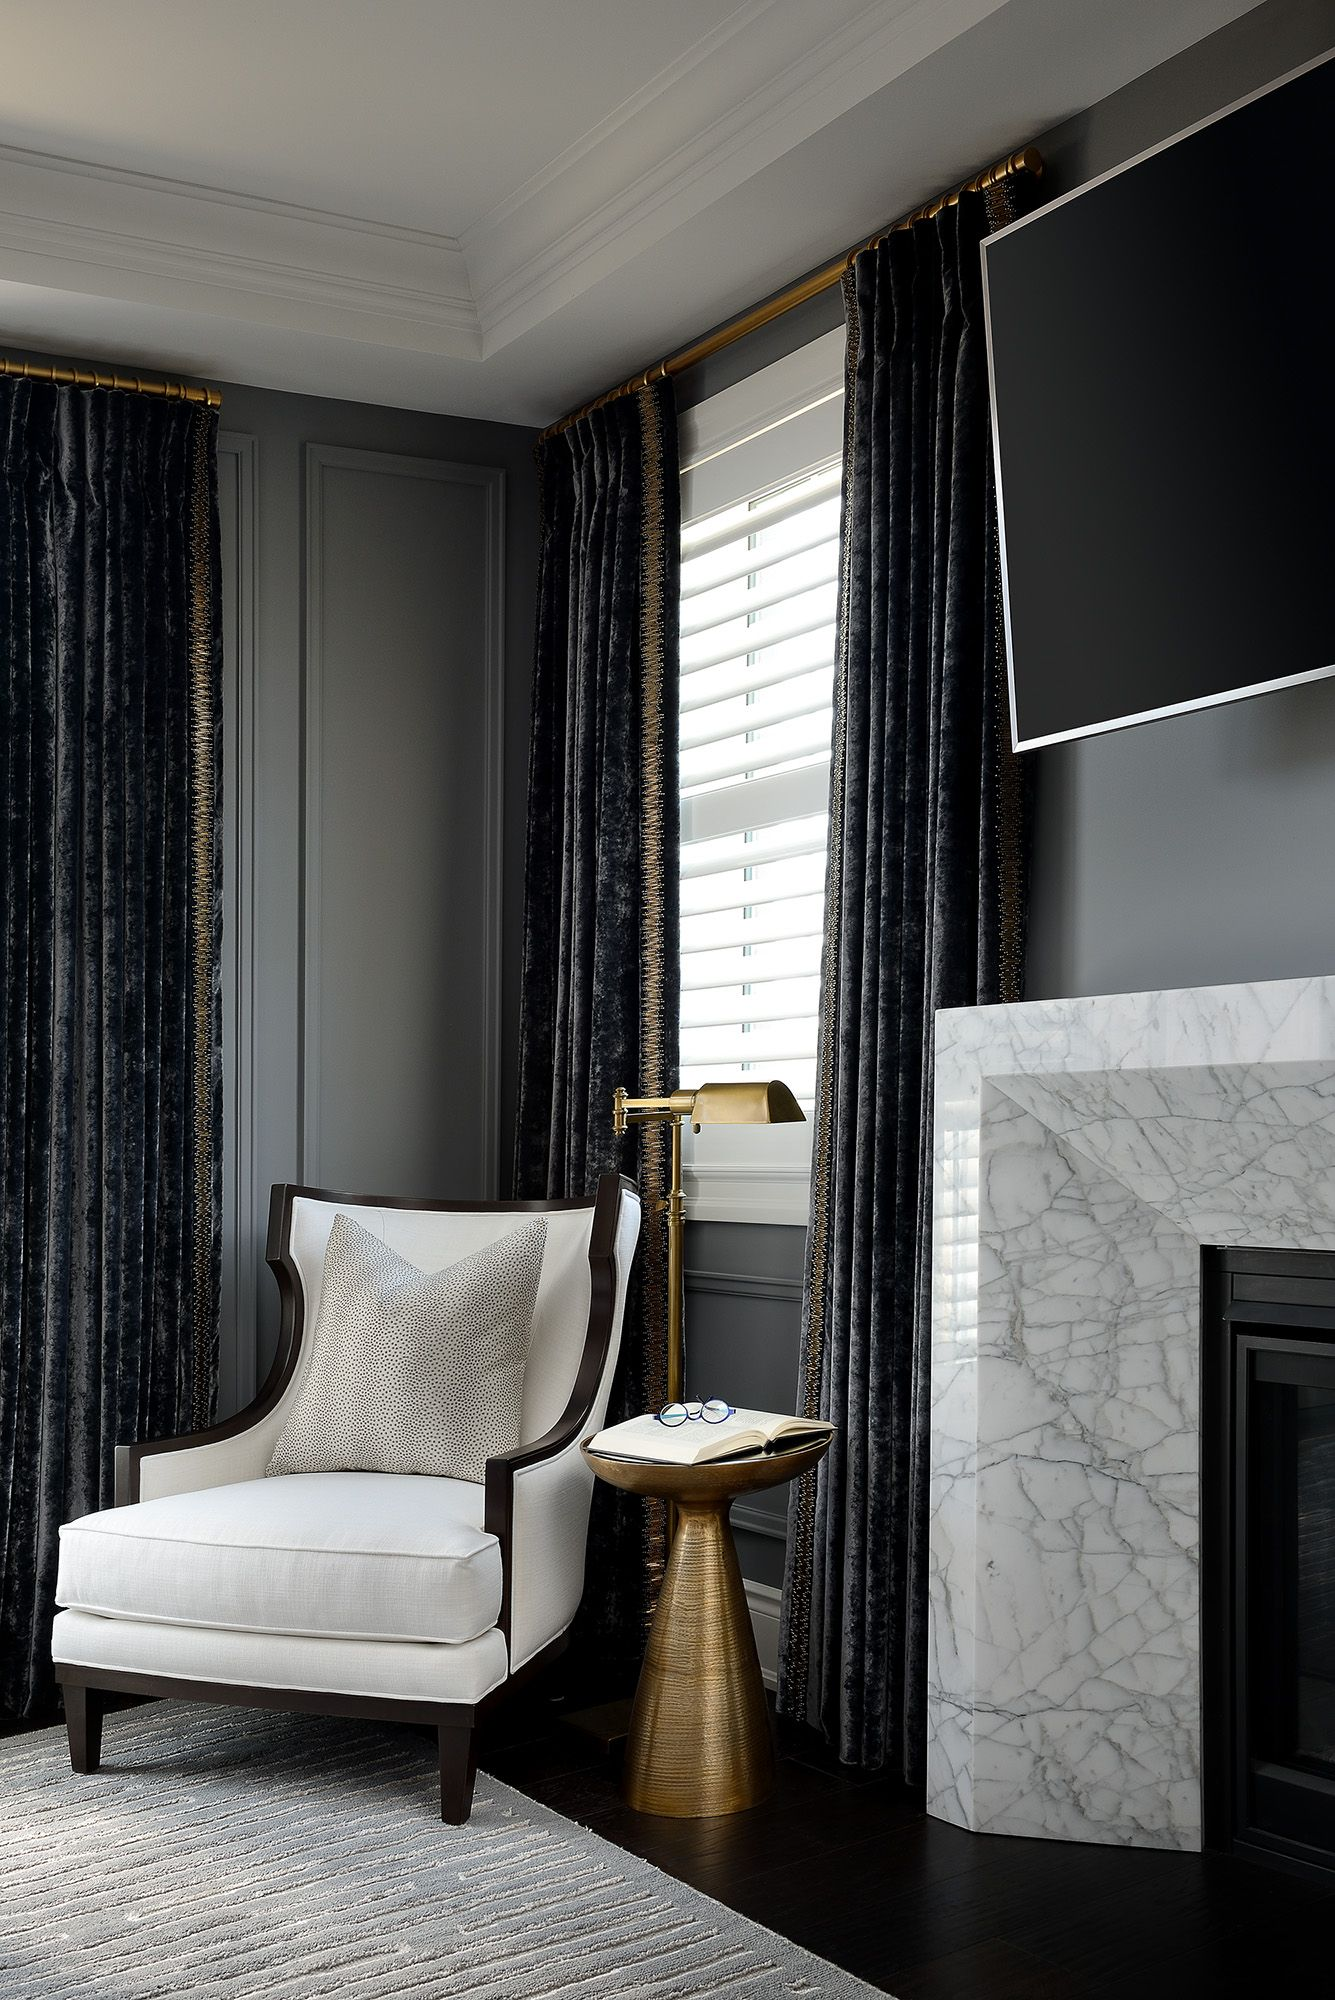 The Boulevard Andrew Pike Interiors Fireplace Surrounds